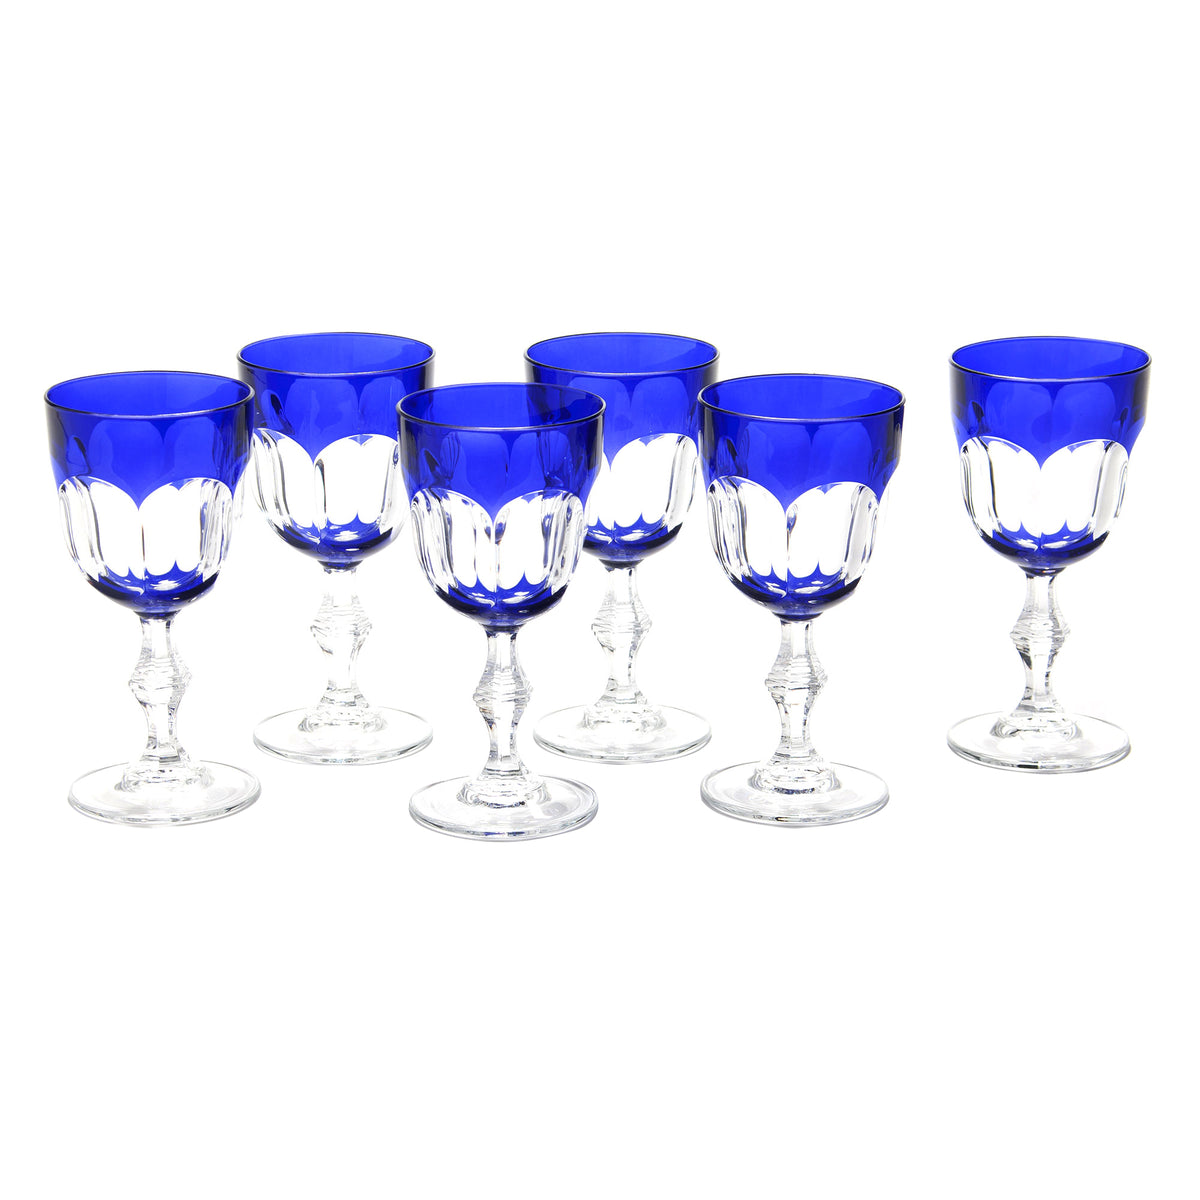 Set of 6 Nicole Blue Wine Glasses